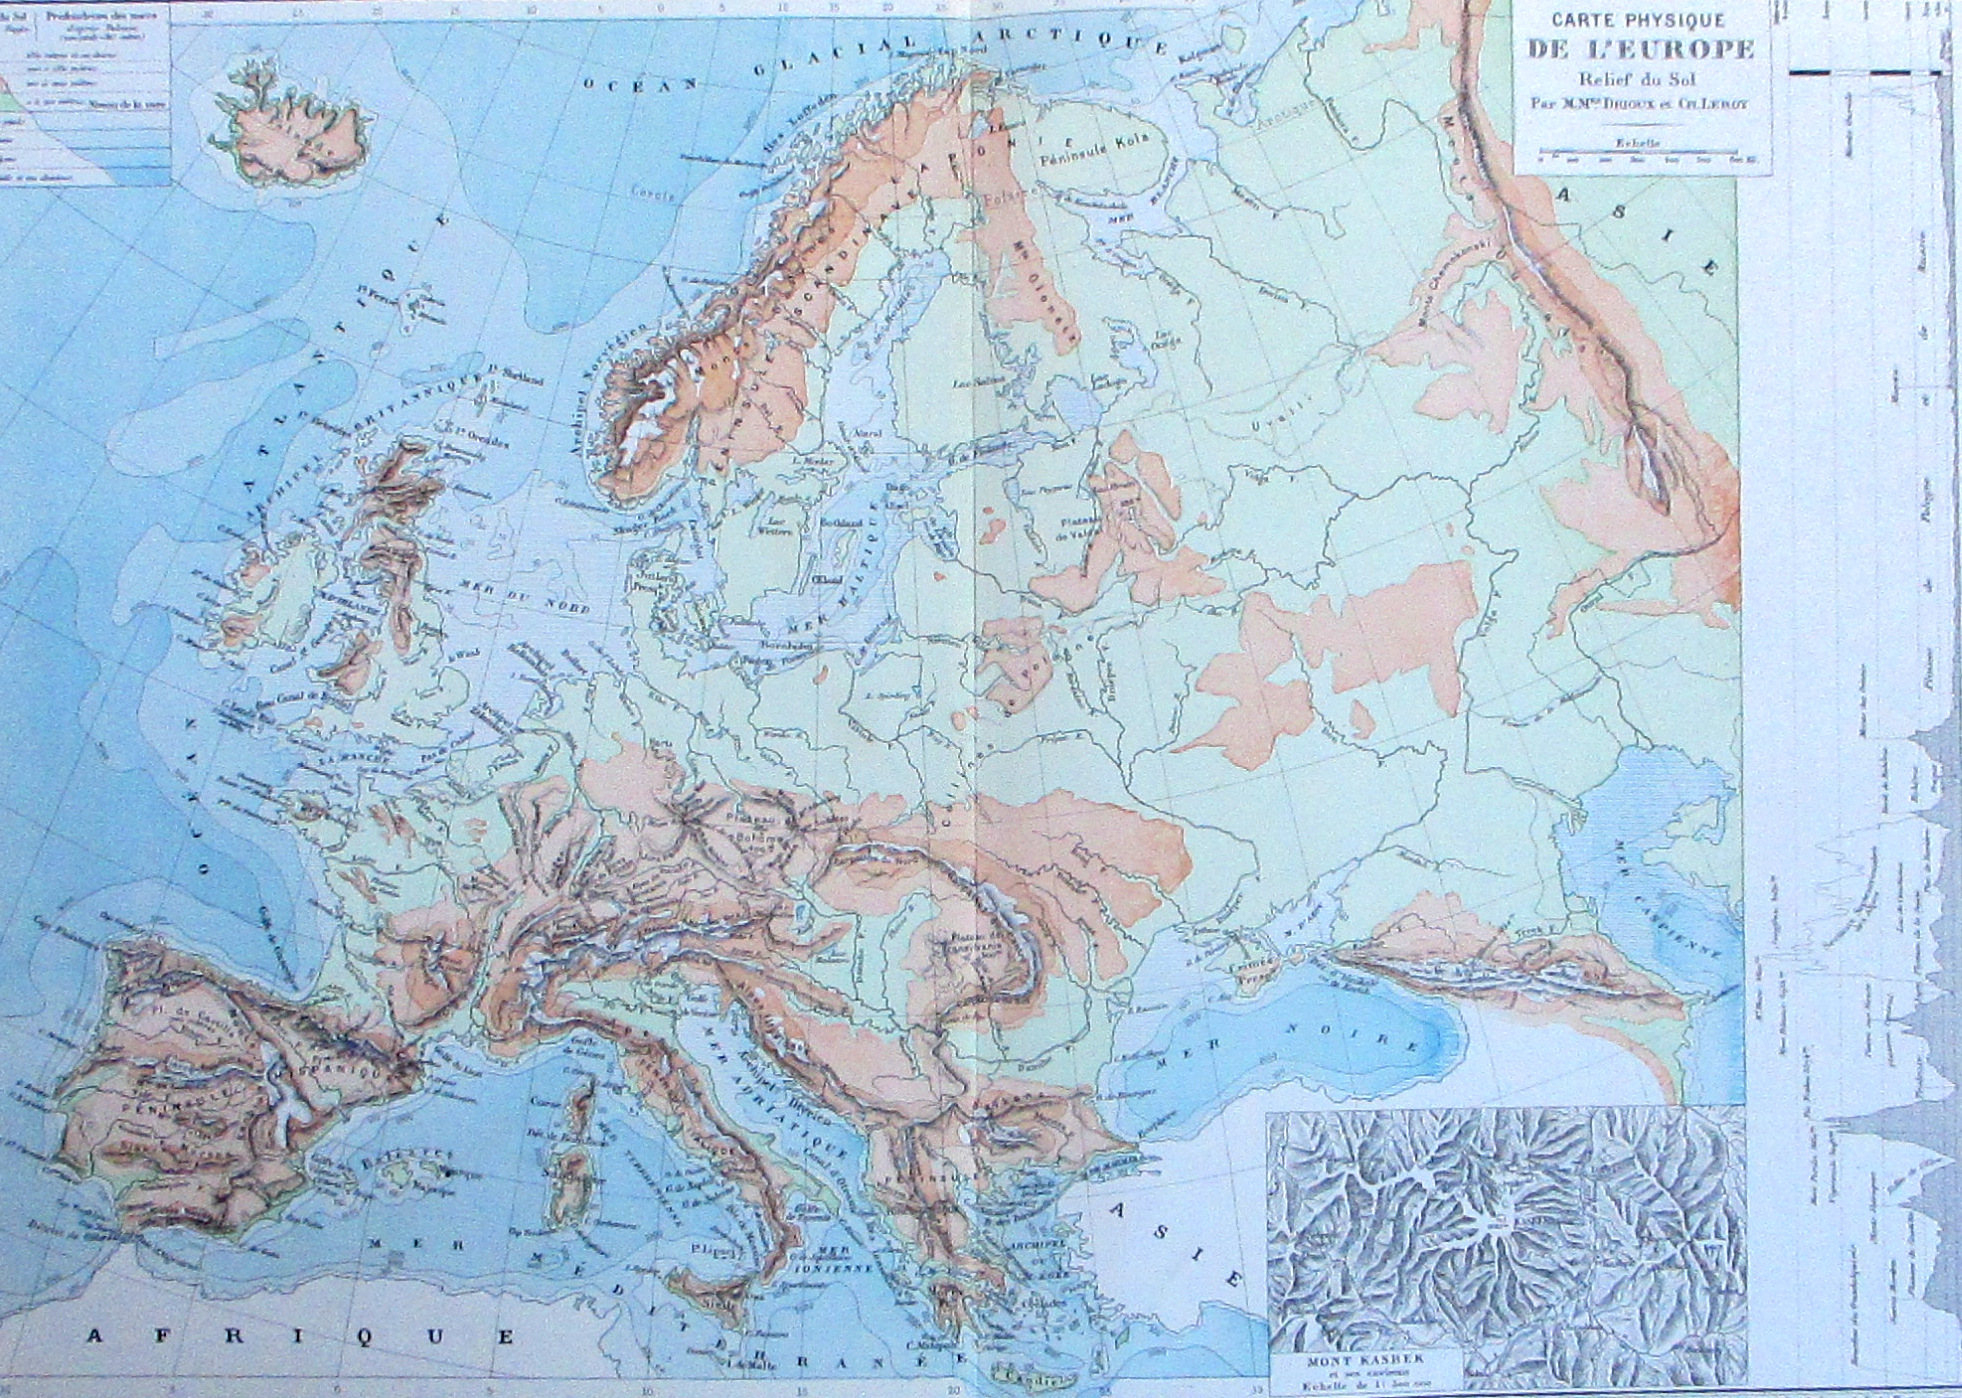 "1887 Europe Relief Map, Physical Geography, ""carte Physique De L'europe,  Relief Du Sol"". Original Antique Engraved Map. avec Carte De L Europe En Relief"